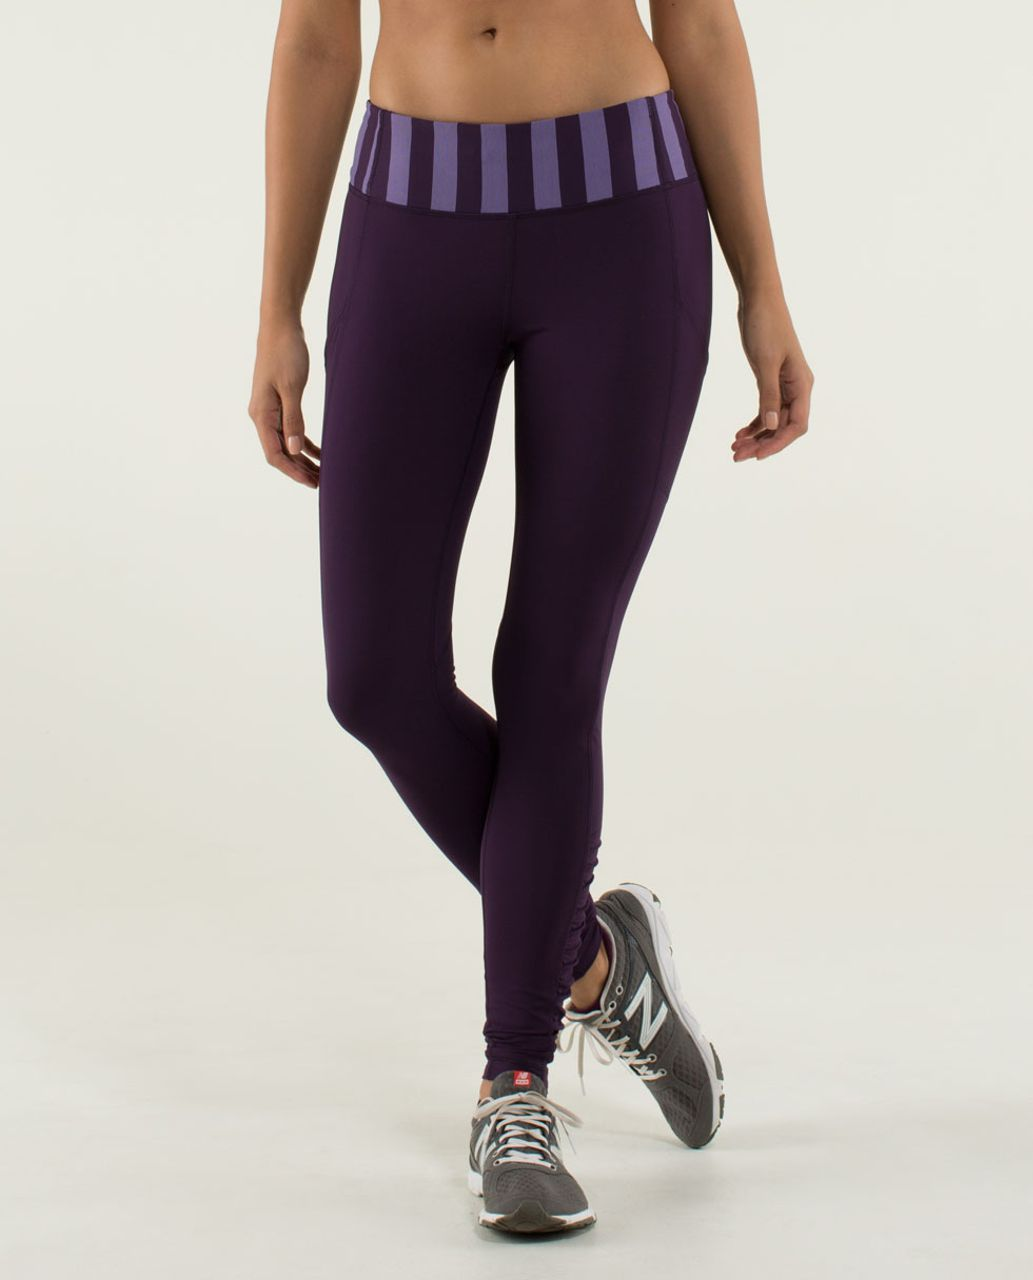 Lululemon Speed Tight *Brushed Interlock - Deep Zinfandel / Micro Macro Stripe Deep Zinfandel